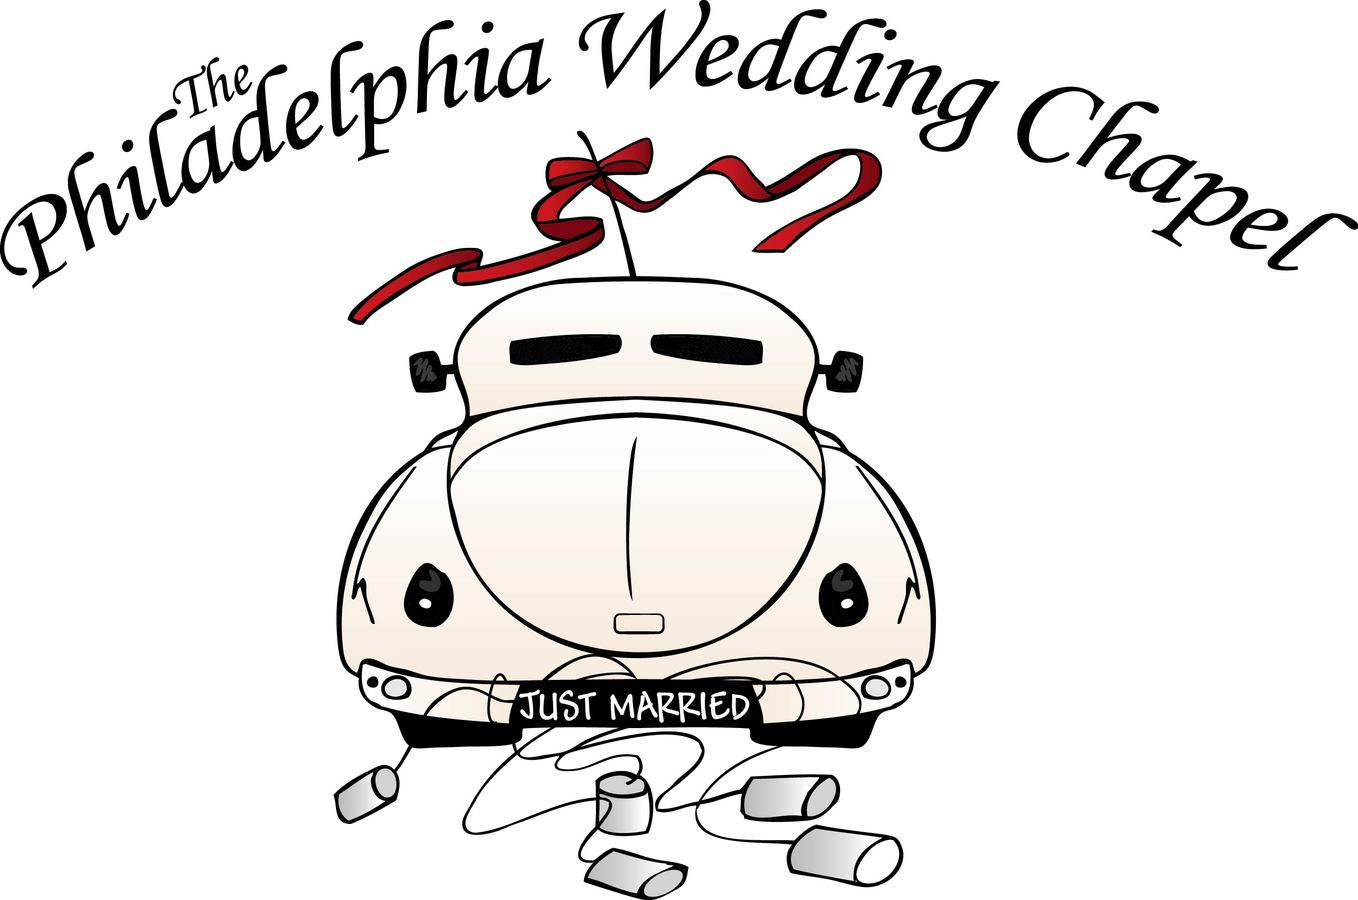 The Philadelphia Wedding Chapel